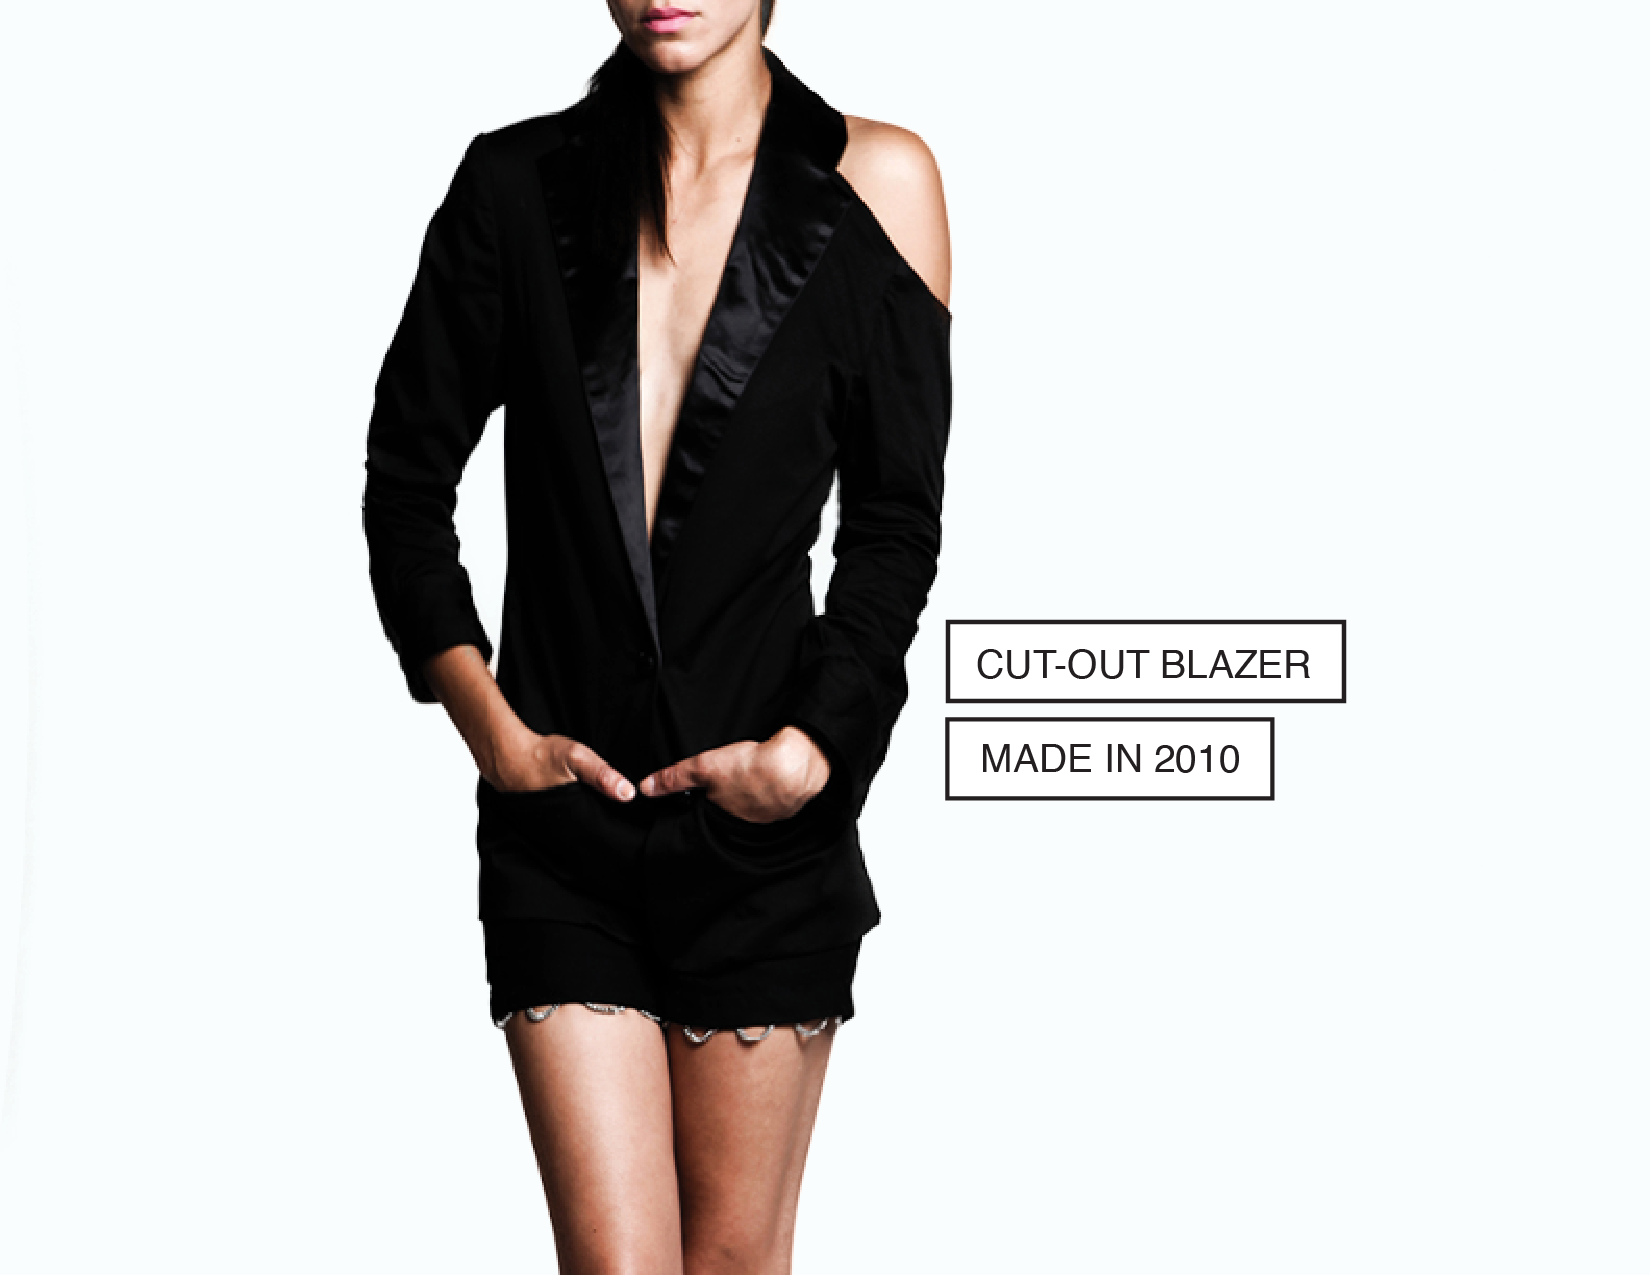 body_of_work_alfred_lape_cut_and_sew.png-37